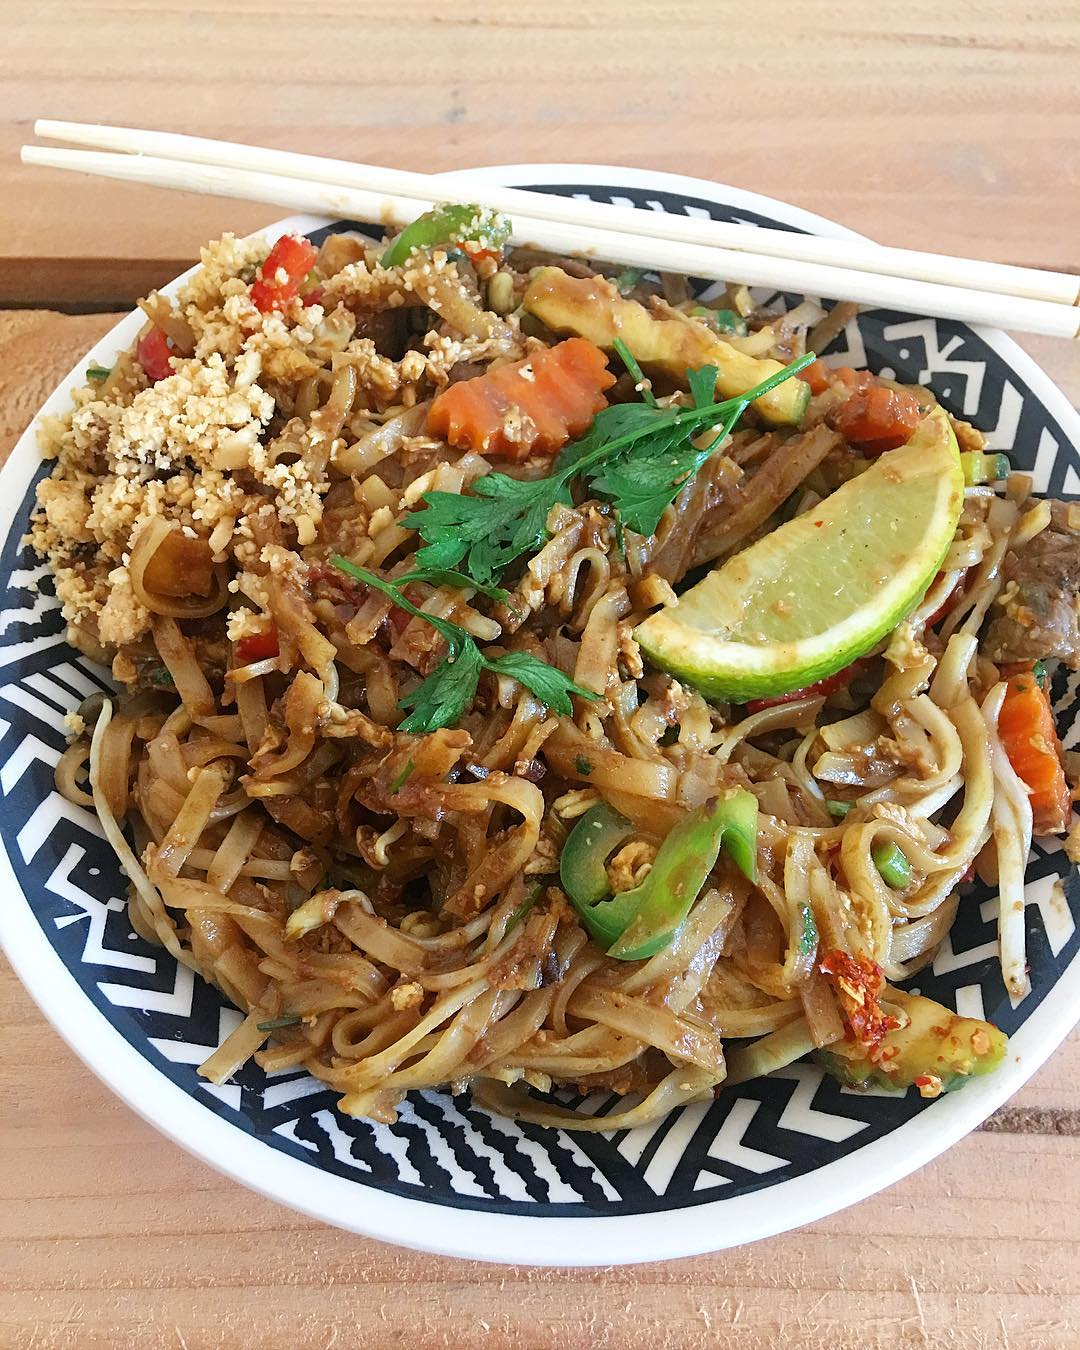 ... quand il fait froid, envie de chaleur ?? PAD THAÏ my love ? ______ #asianFood #thaifood #padthai #restaurant #cityguide #food #blogfood #gastronomy #gastronomie #cityTrip #foodlover #foodblogger #food #frenchBlogger #blogueuse #blog #pintademontpellier #montpellier